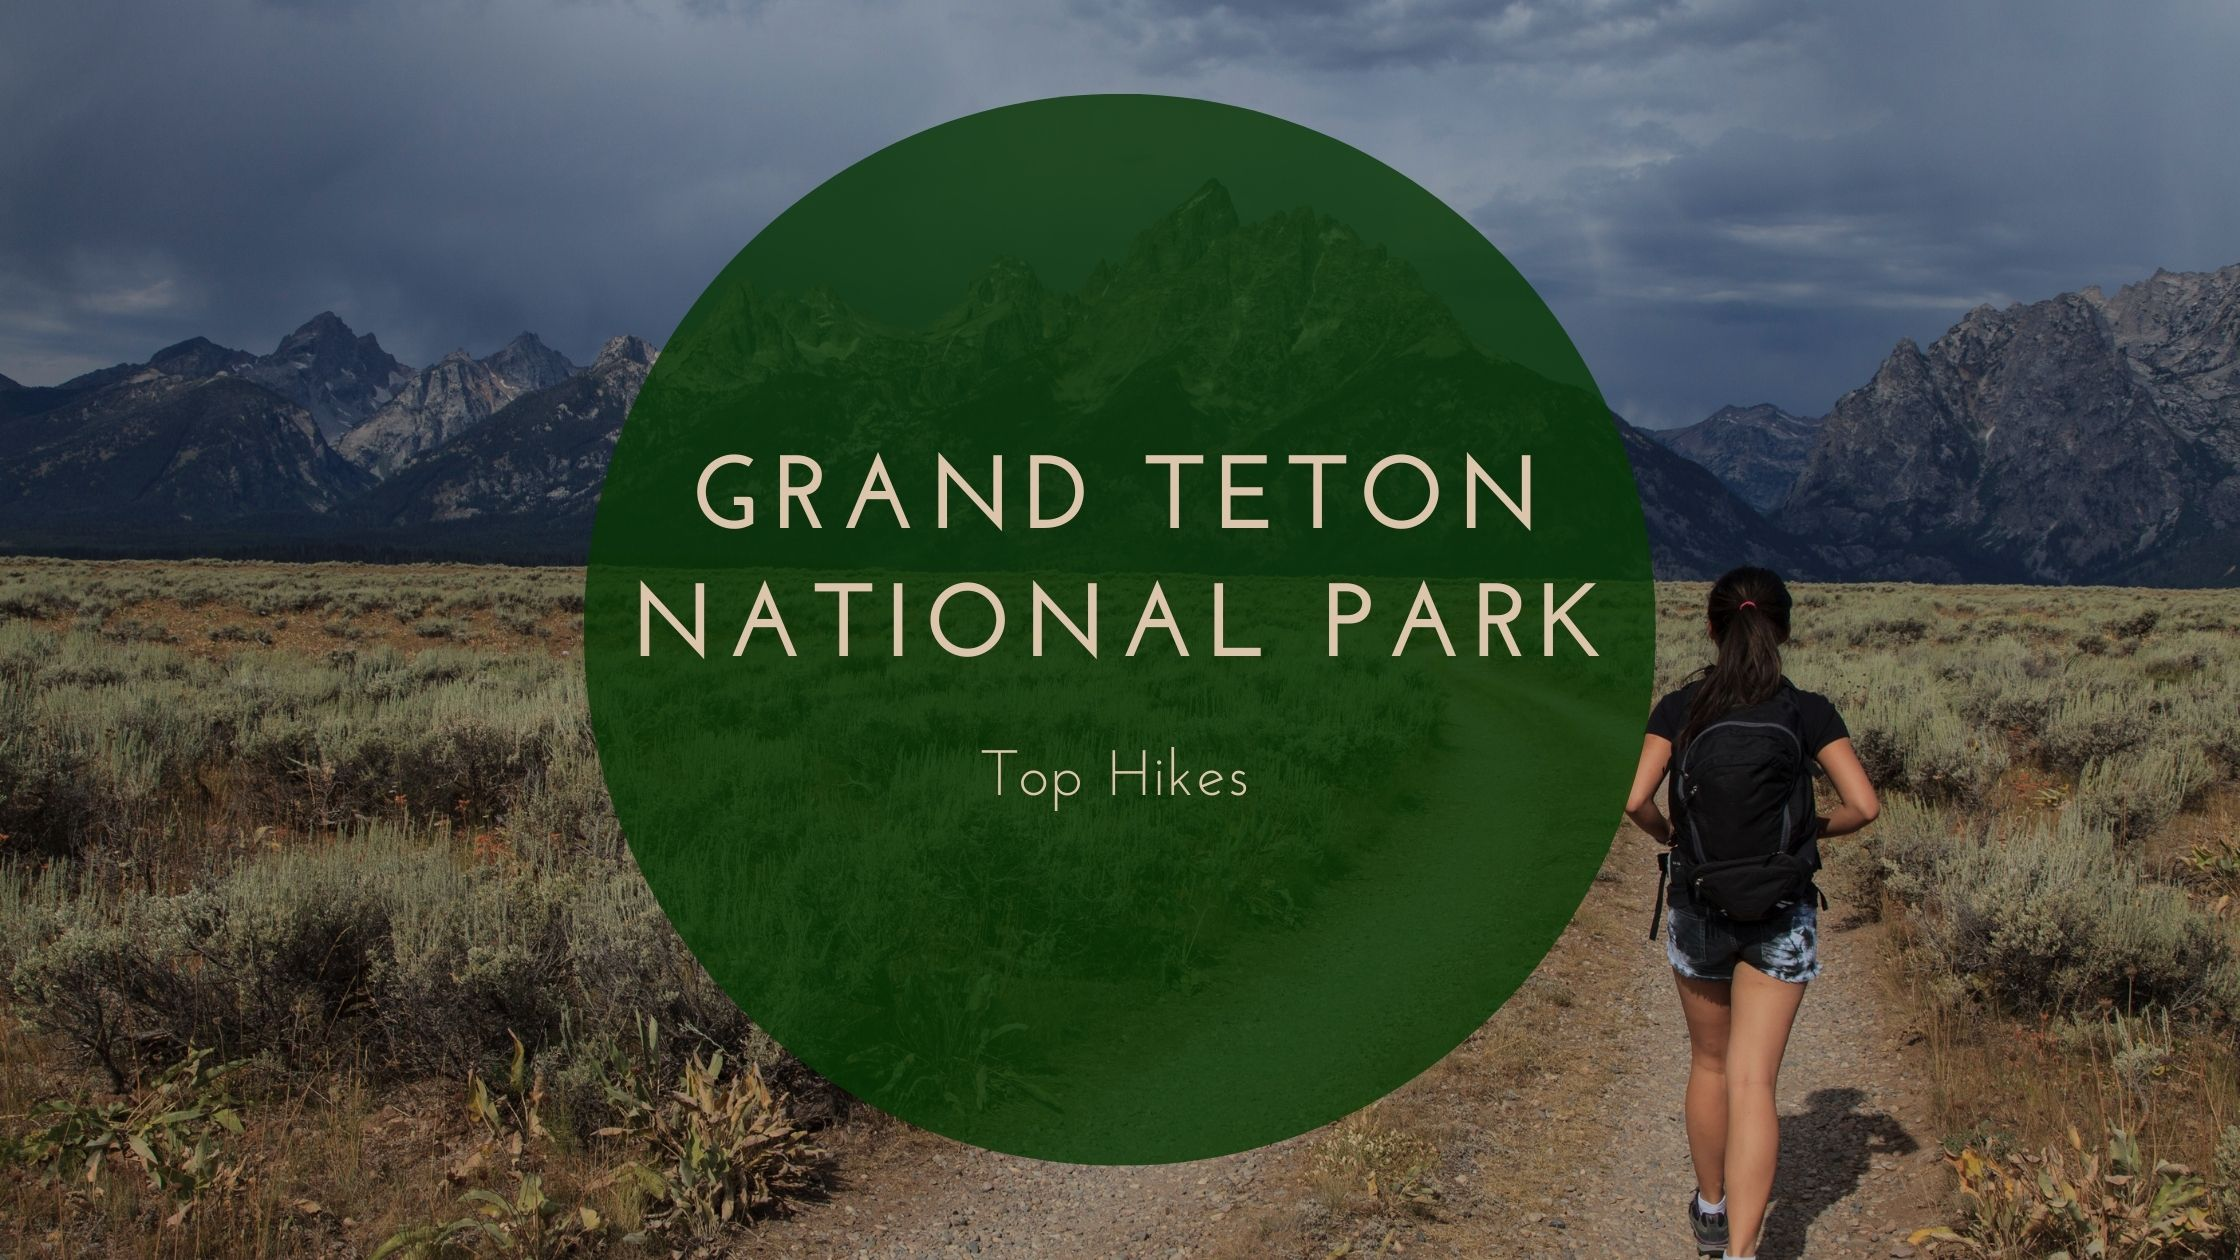 Top Hikes in Grand Teton National Park